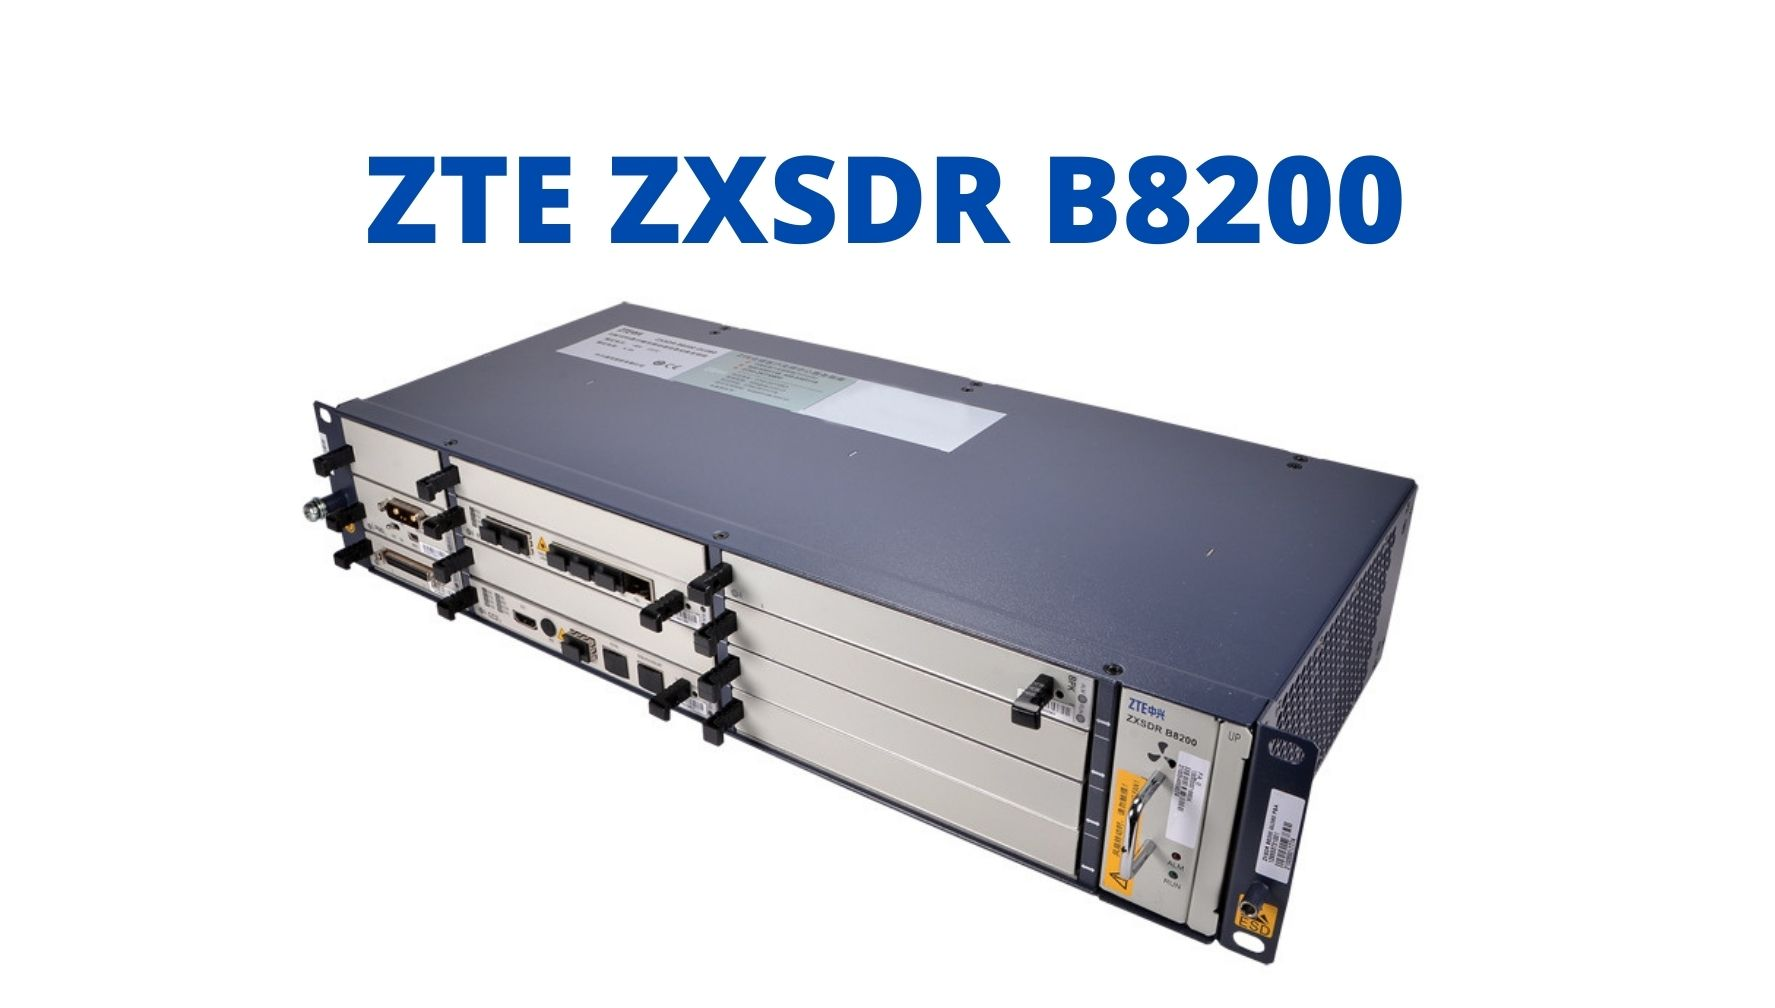 What is ZTE ZXSDR B8200?